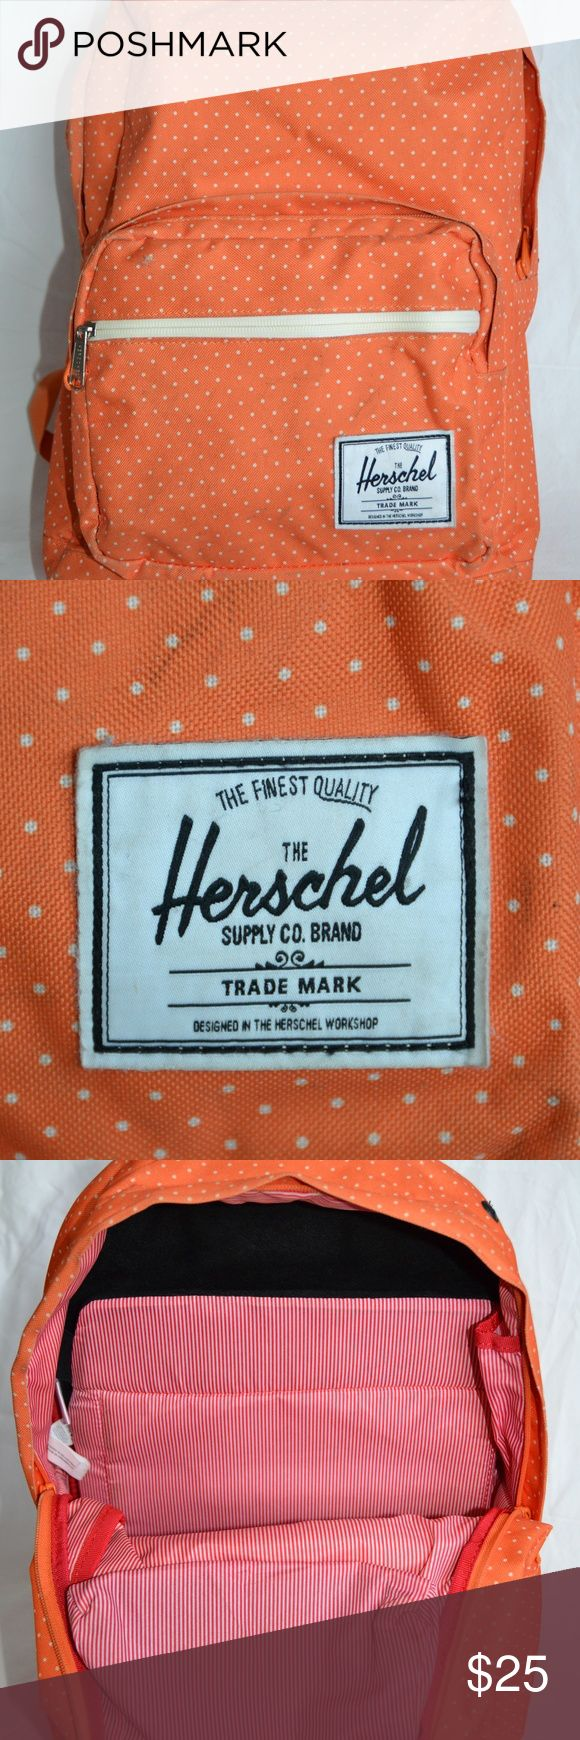 Herschel Orange & White Polka Dot Backpack Herschel orange backpack with white polka dots. Decent used condition. Some discoloration, wear and tear (see photos). Great storage space including interior phone and laptop sleeve pockets. Small pocket on top with velvet interior for valuables. And more! Herschel Supply Company Bags Backpacks